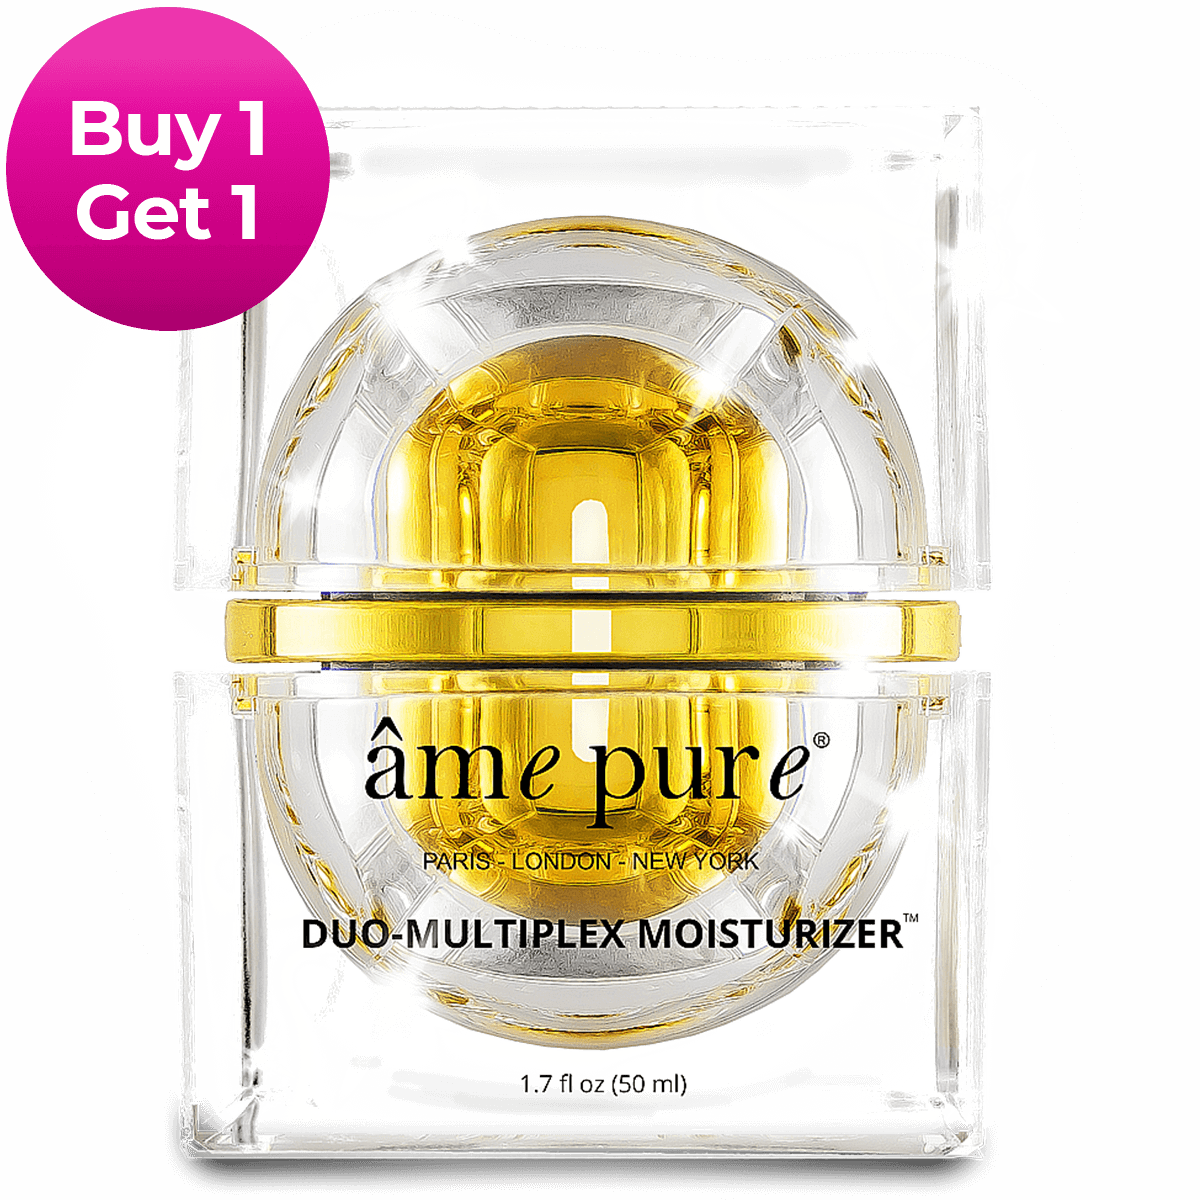 Duo-Multiplex Moisturizer™ | Buy 1 Get 1